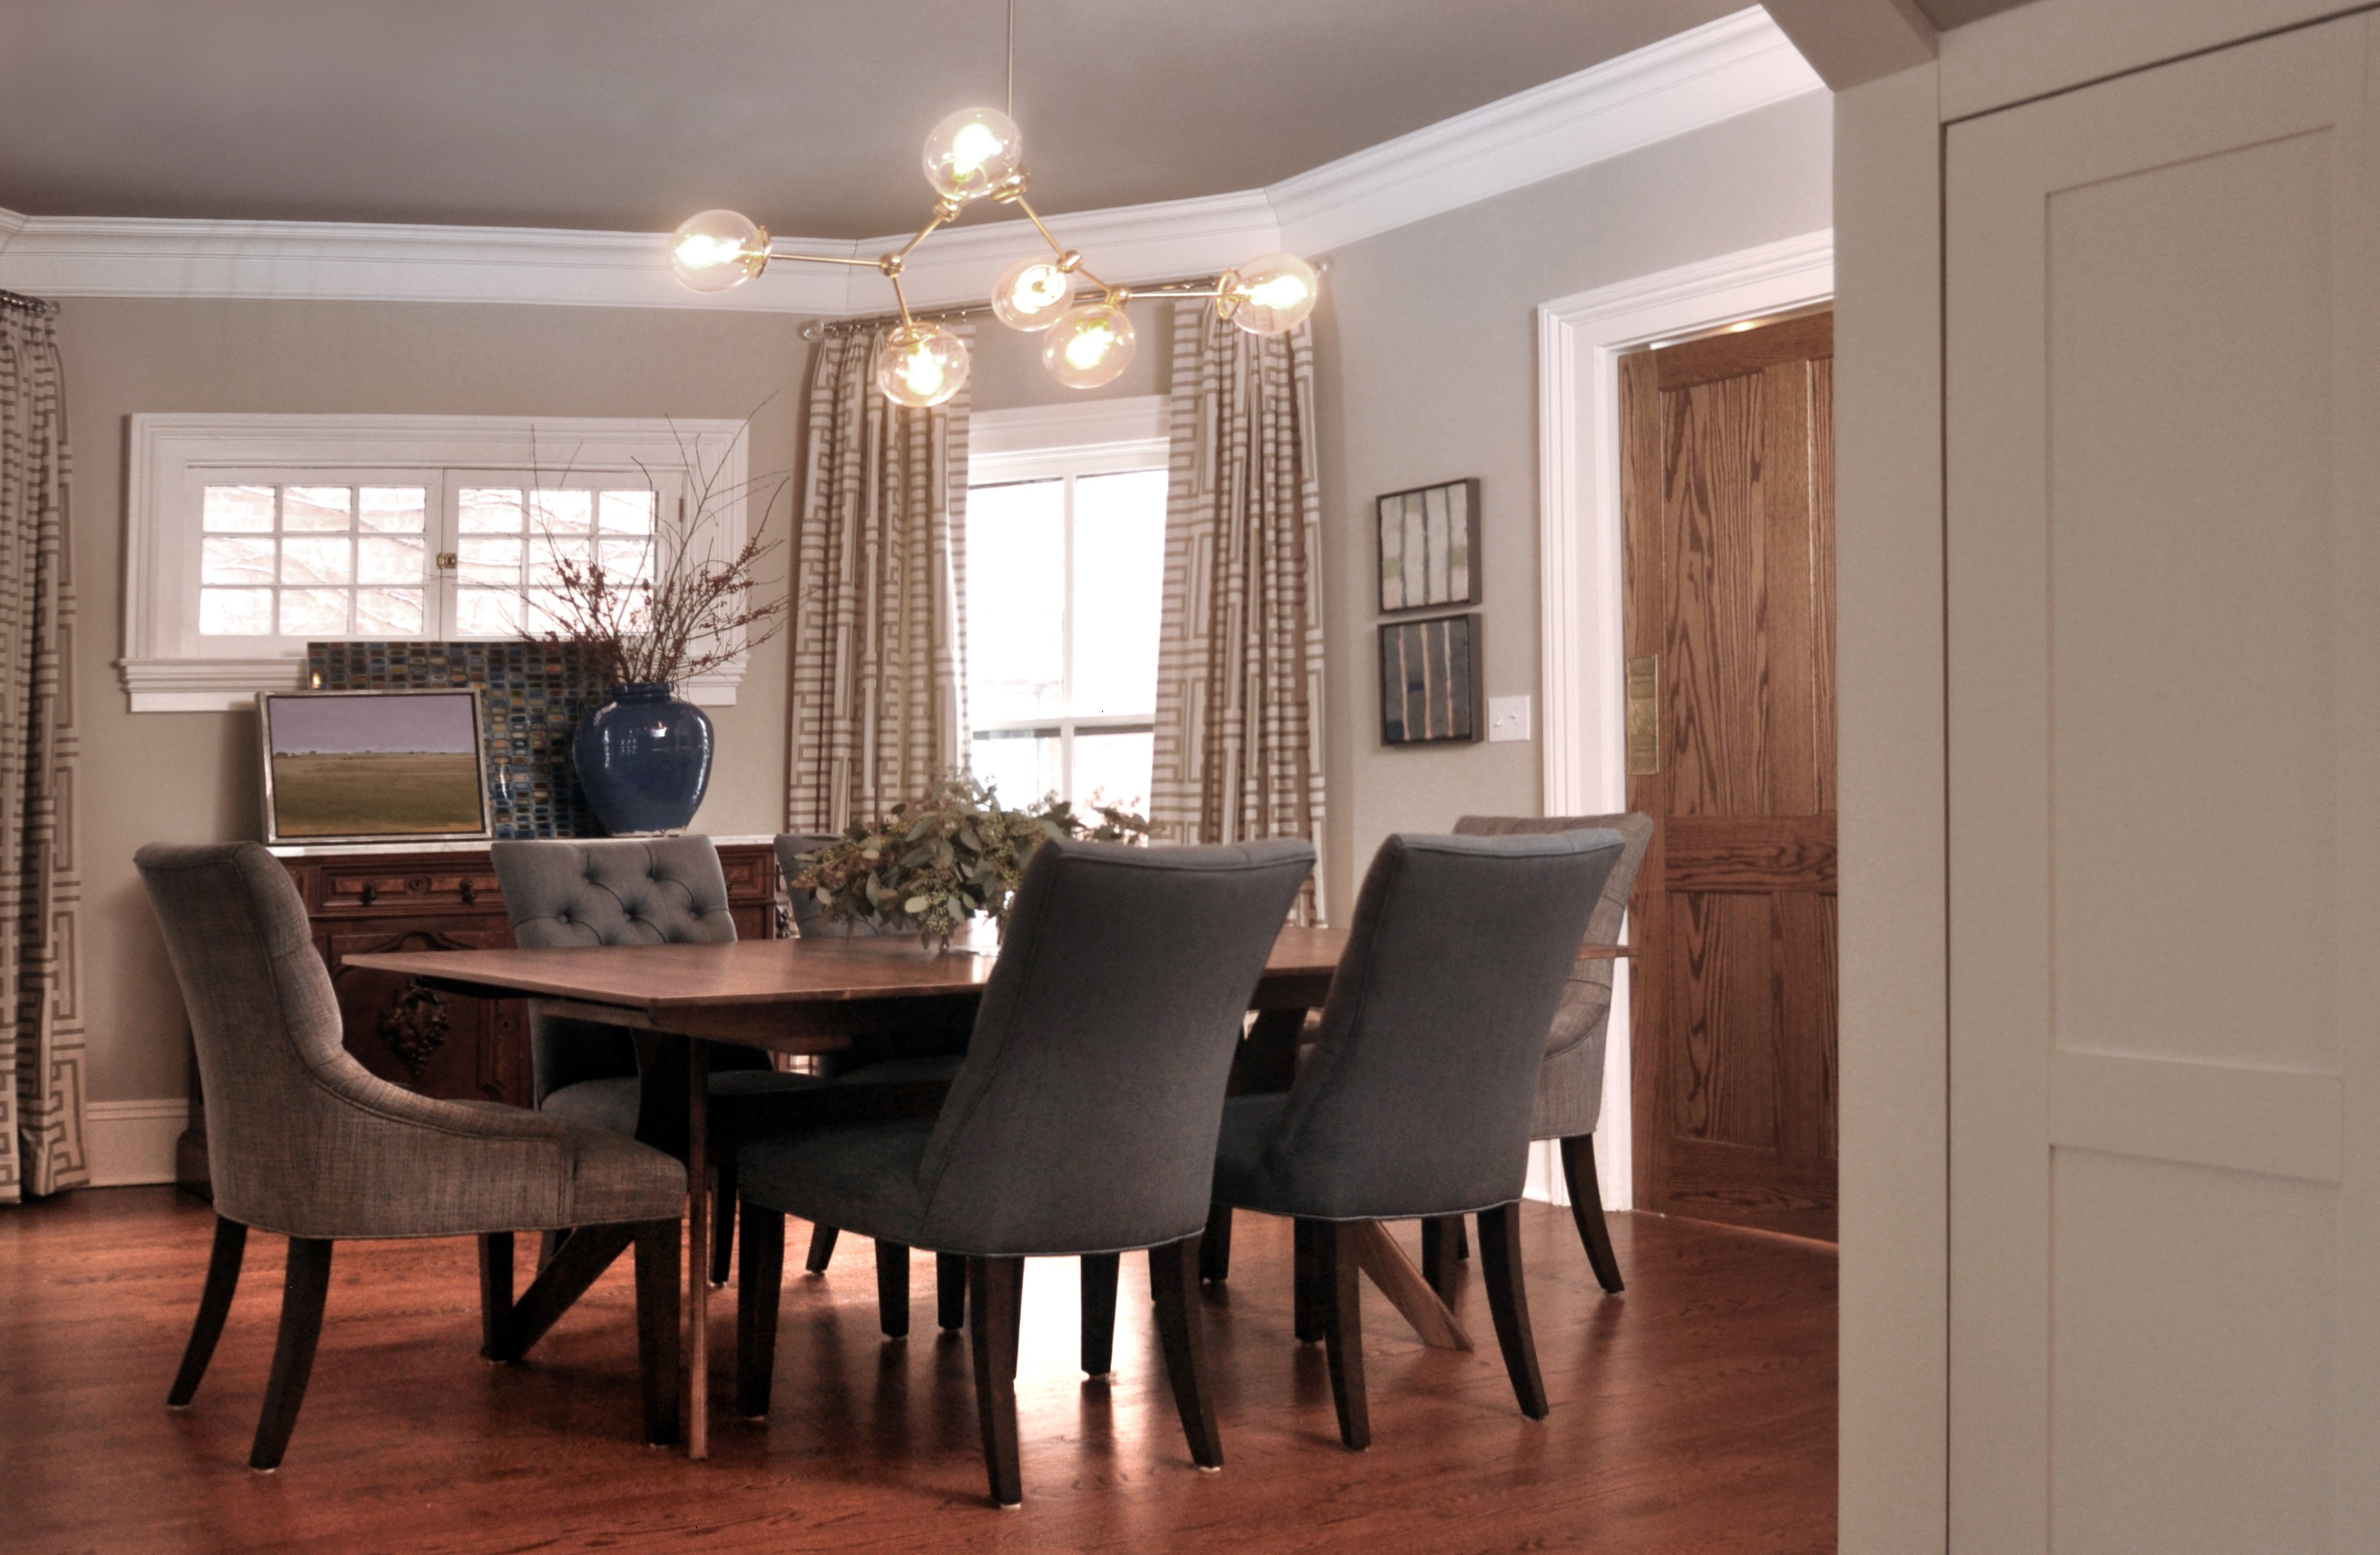 Inviting Formal Dining Room (Image 19 of 32)